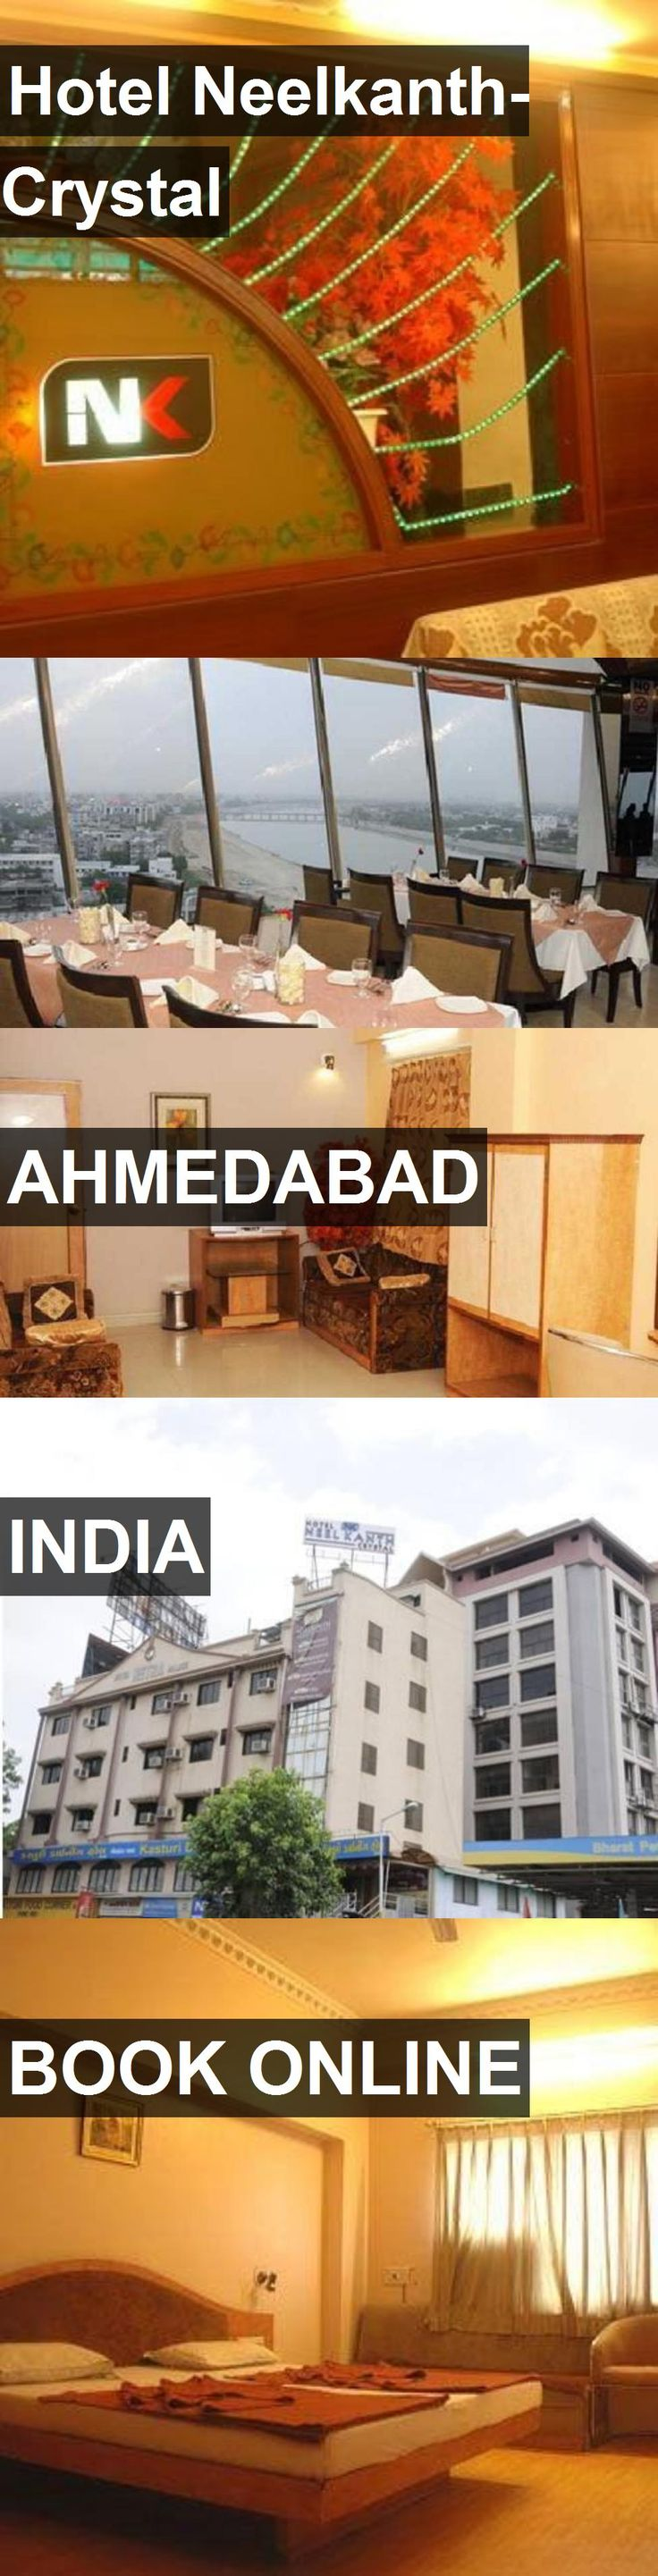 Hotel Hotel Neelkanth-Crystal in Ahmedabad, India. For more information, photos, reviews and best prices please follow the link. #India #Ahmedabad #HotelNeelkanth-Crystal #hotel #travel #vacation